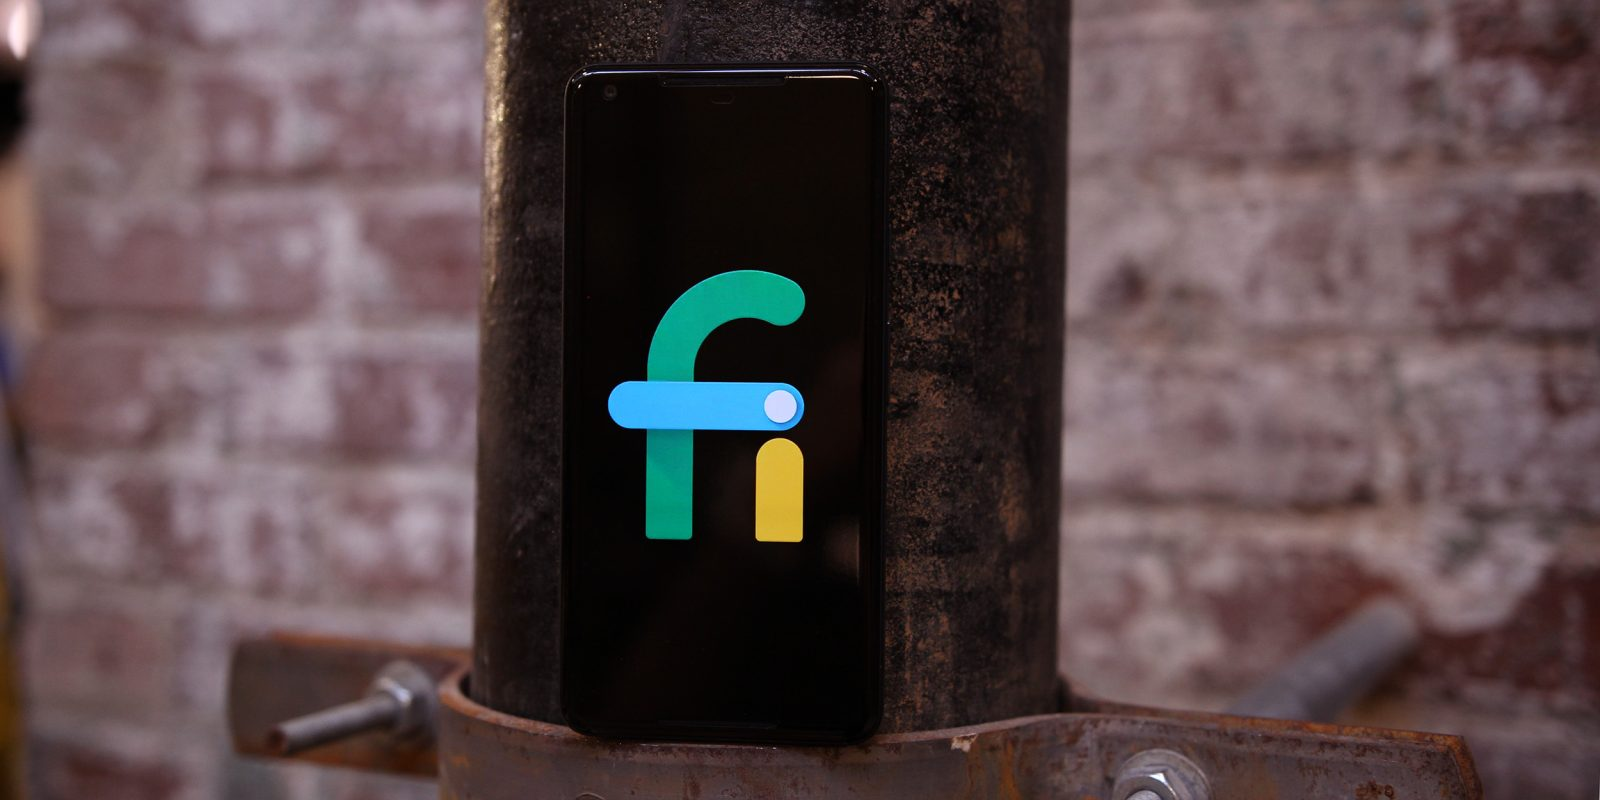 Project Fi now supports Google Family Link to officially add